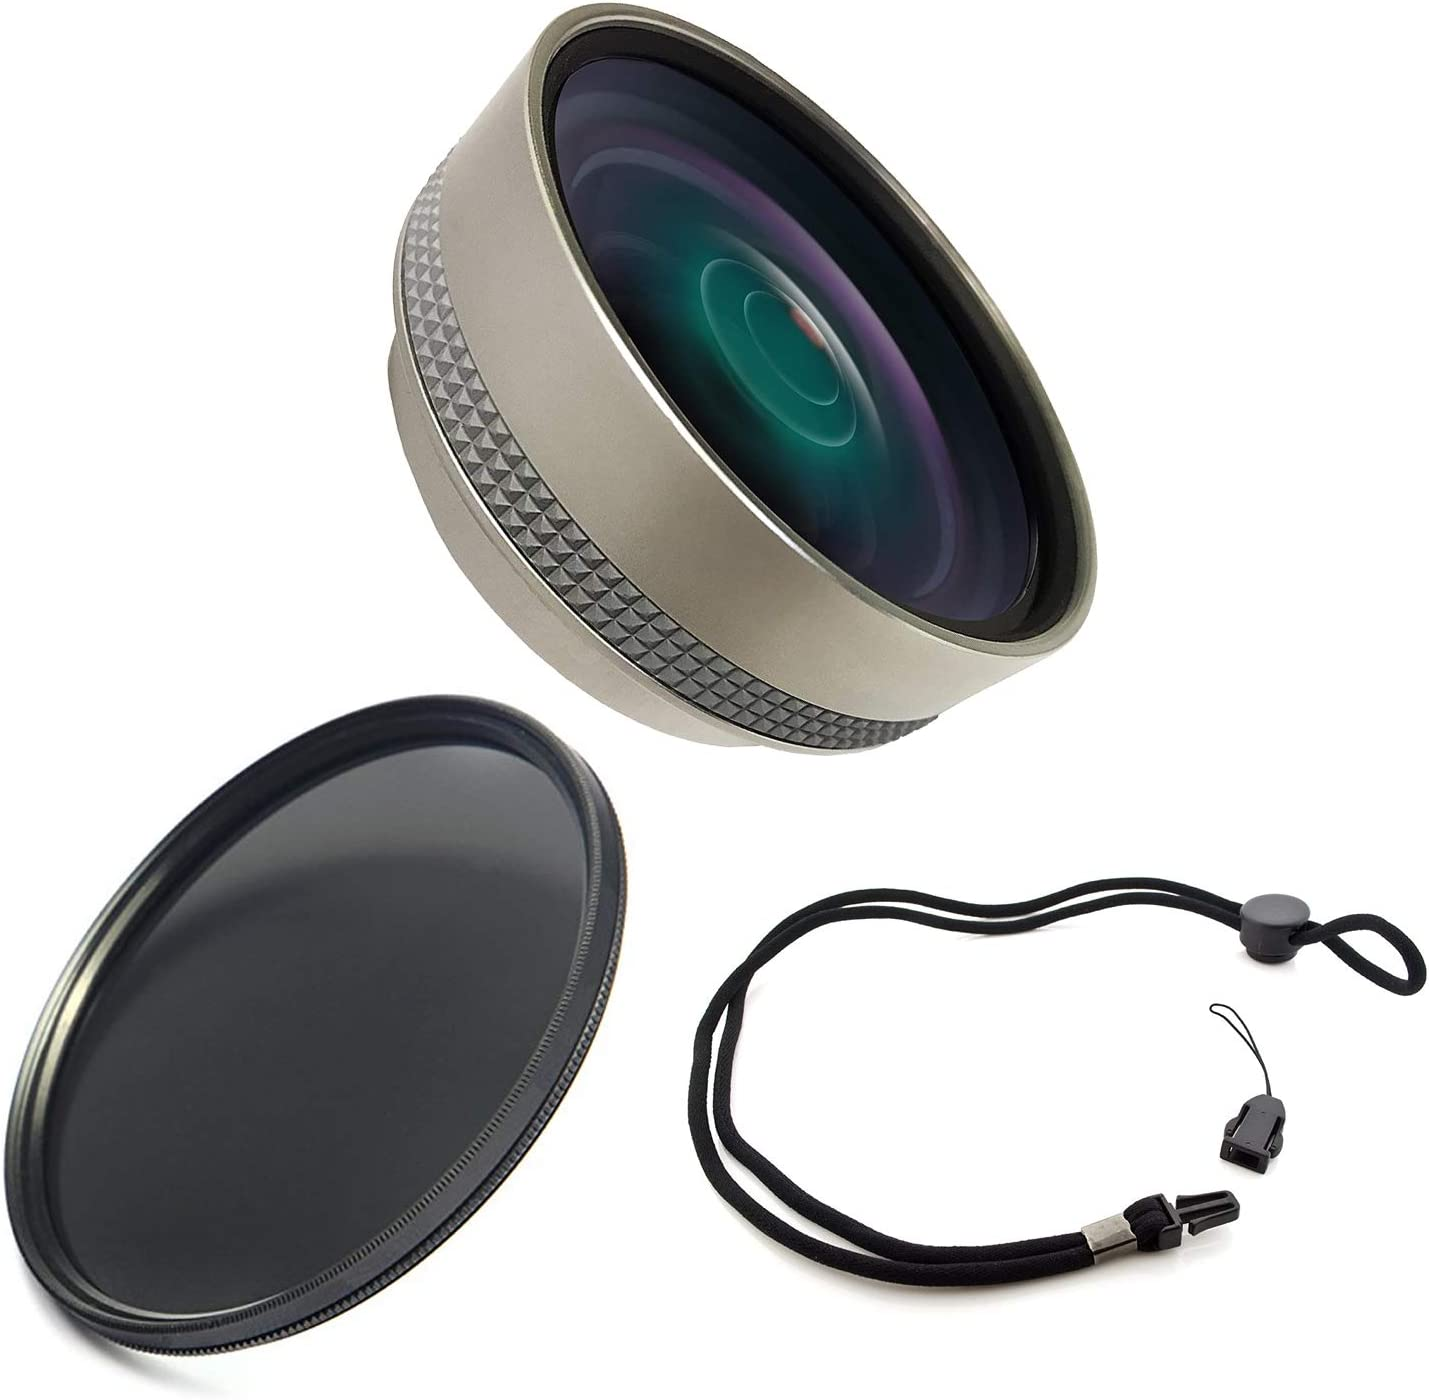 67mm Circular Polarizing Filter High Definition Olympus Tough TG-3 0.4X Wide Angle Lens with Macro Krusell Multidapt Neck Strap Lens Adapters